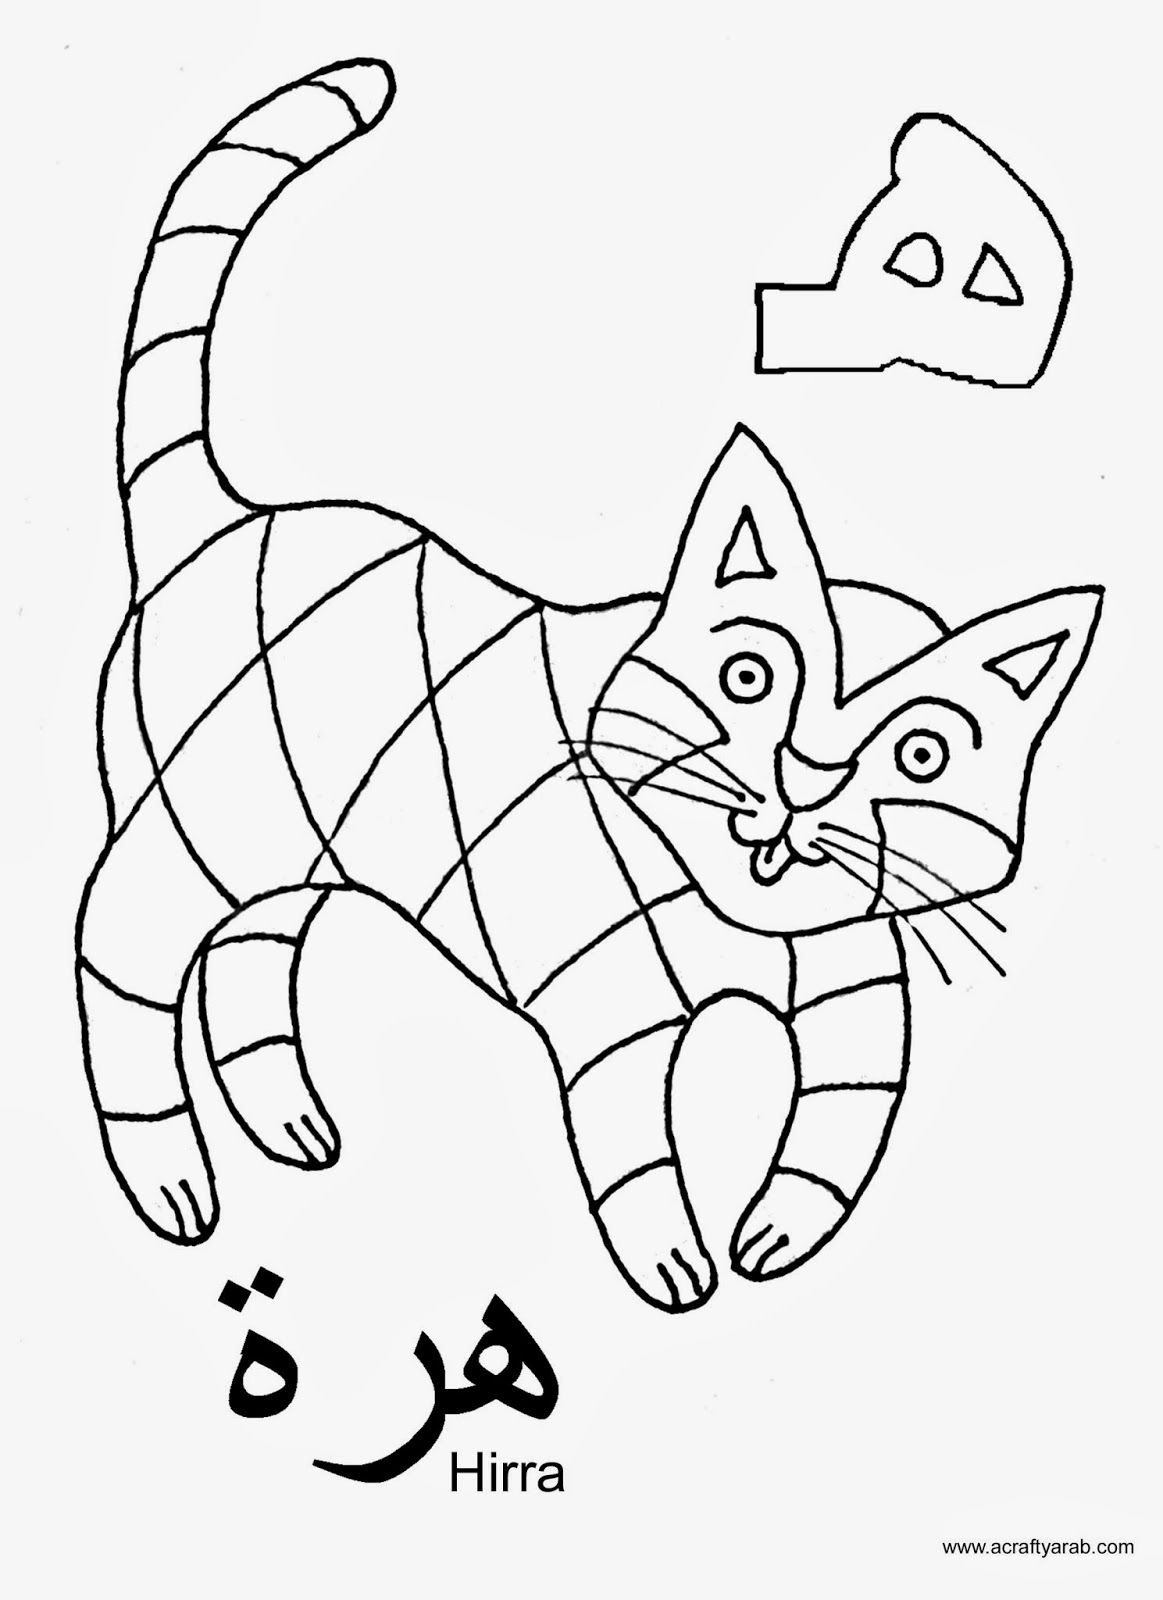 Arabic Alphabet Coloring Pages Haa Is For Hirra Arabic